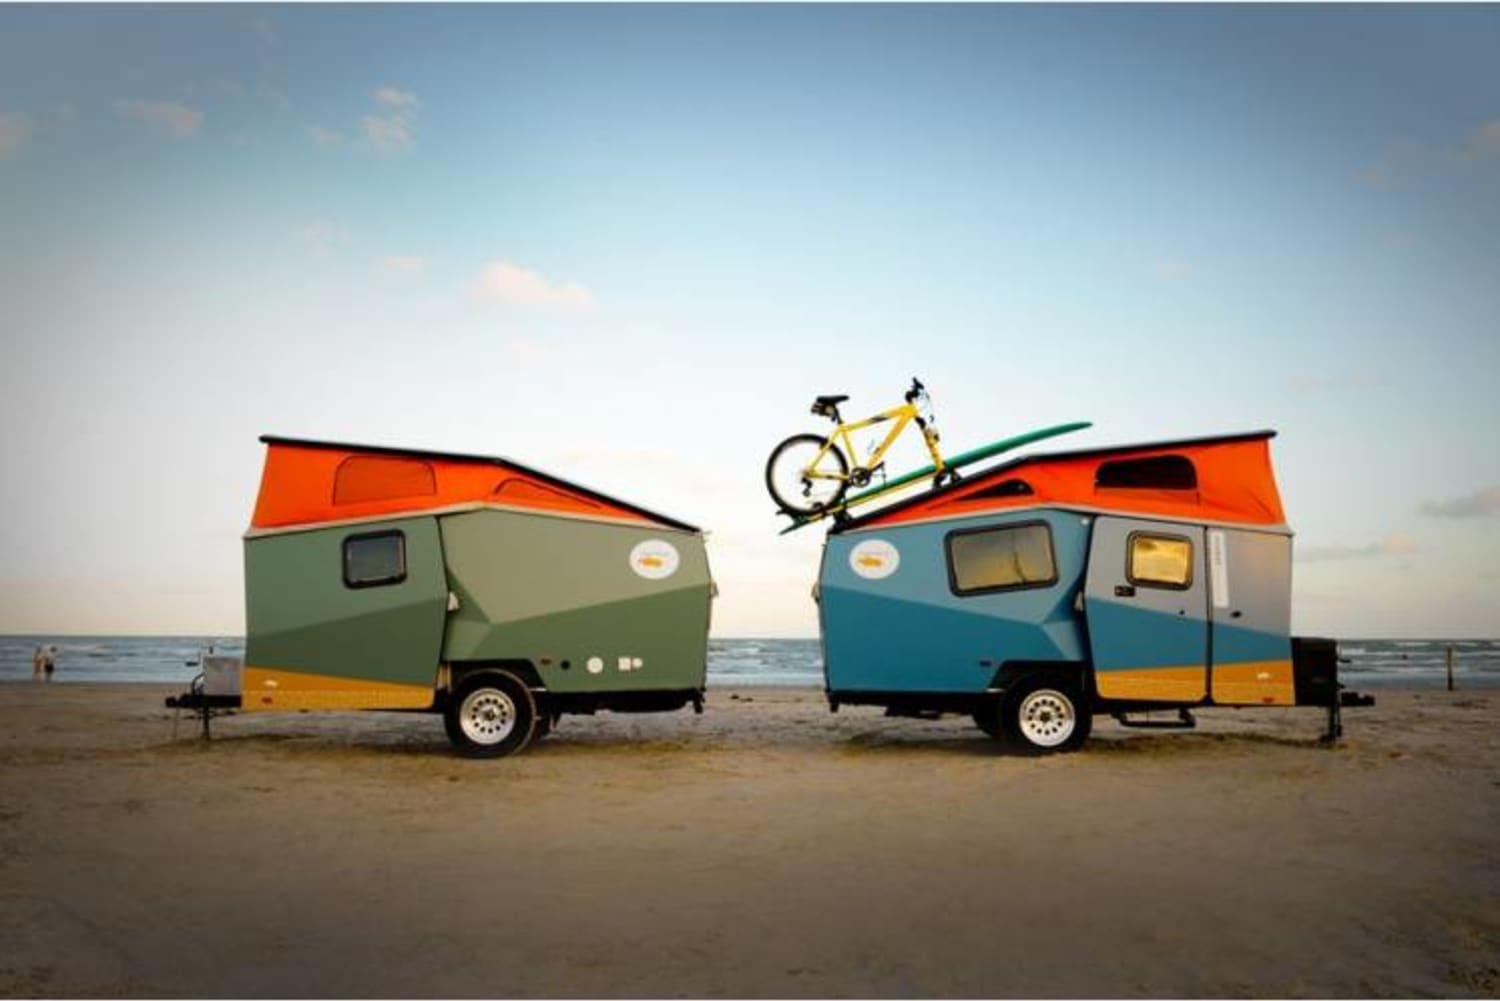 This Is the Airbnb of RV Rentals—And You Can Stay in One Starting at $10 a Night